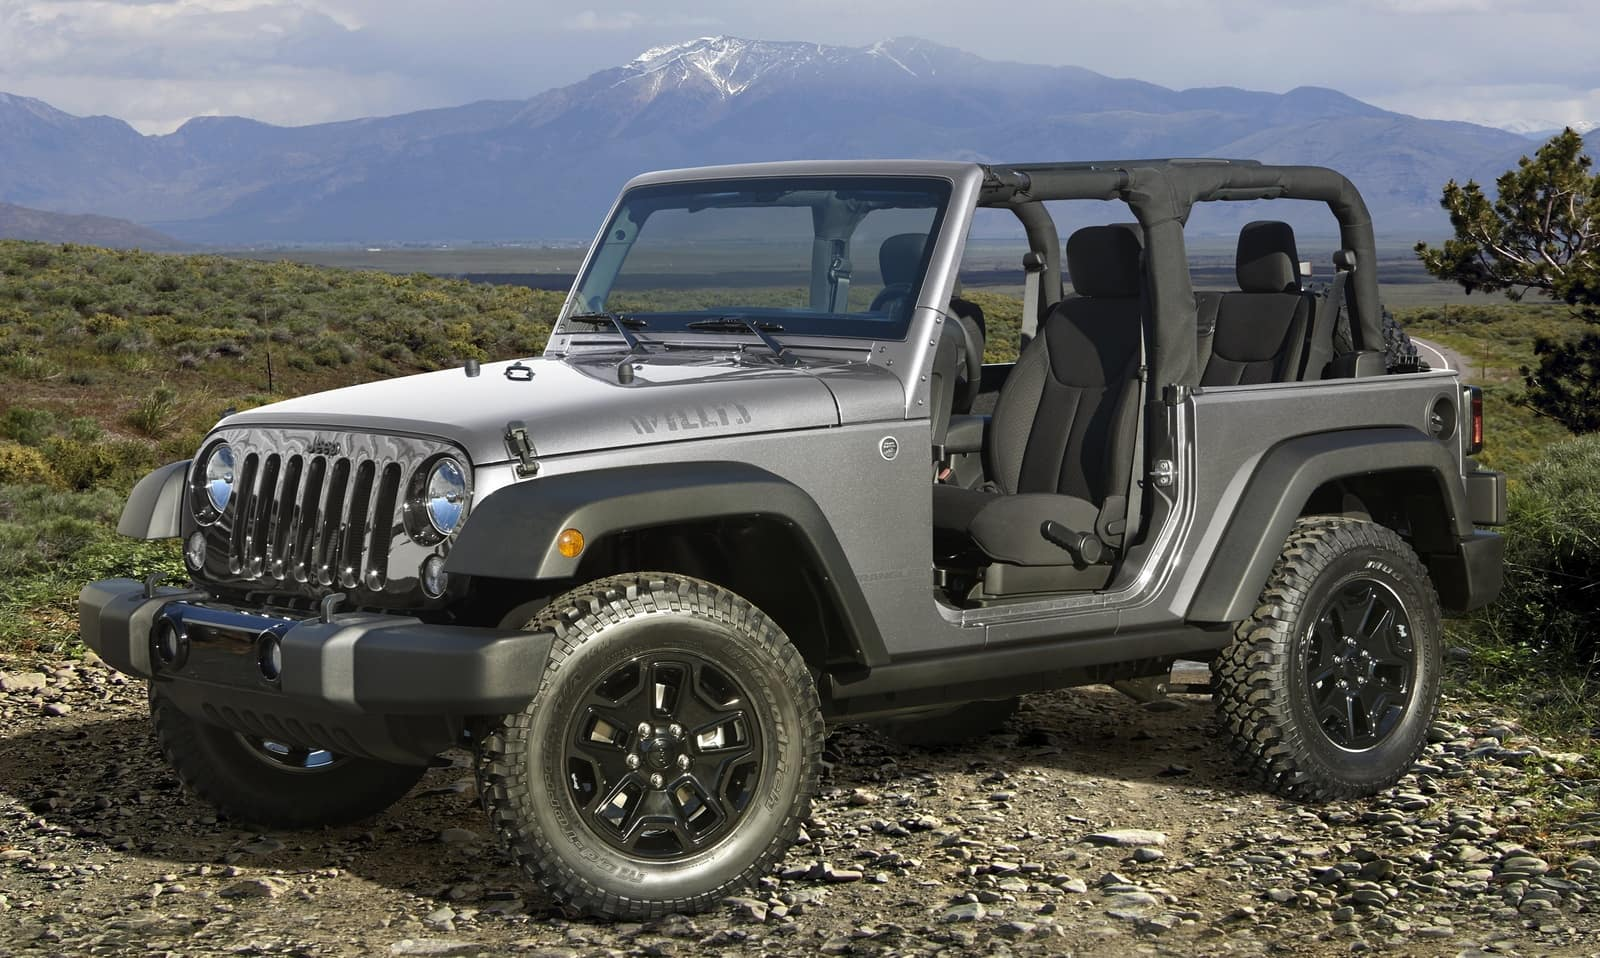 What To Look For In A Used Jeep Wrangler